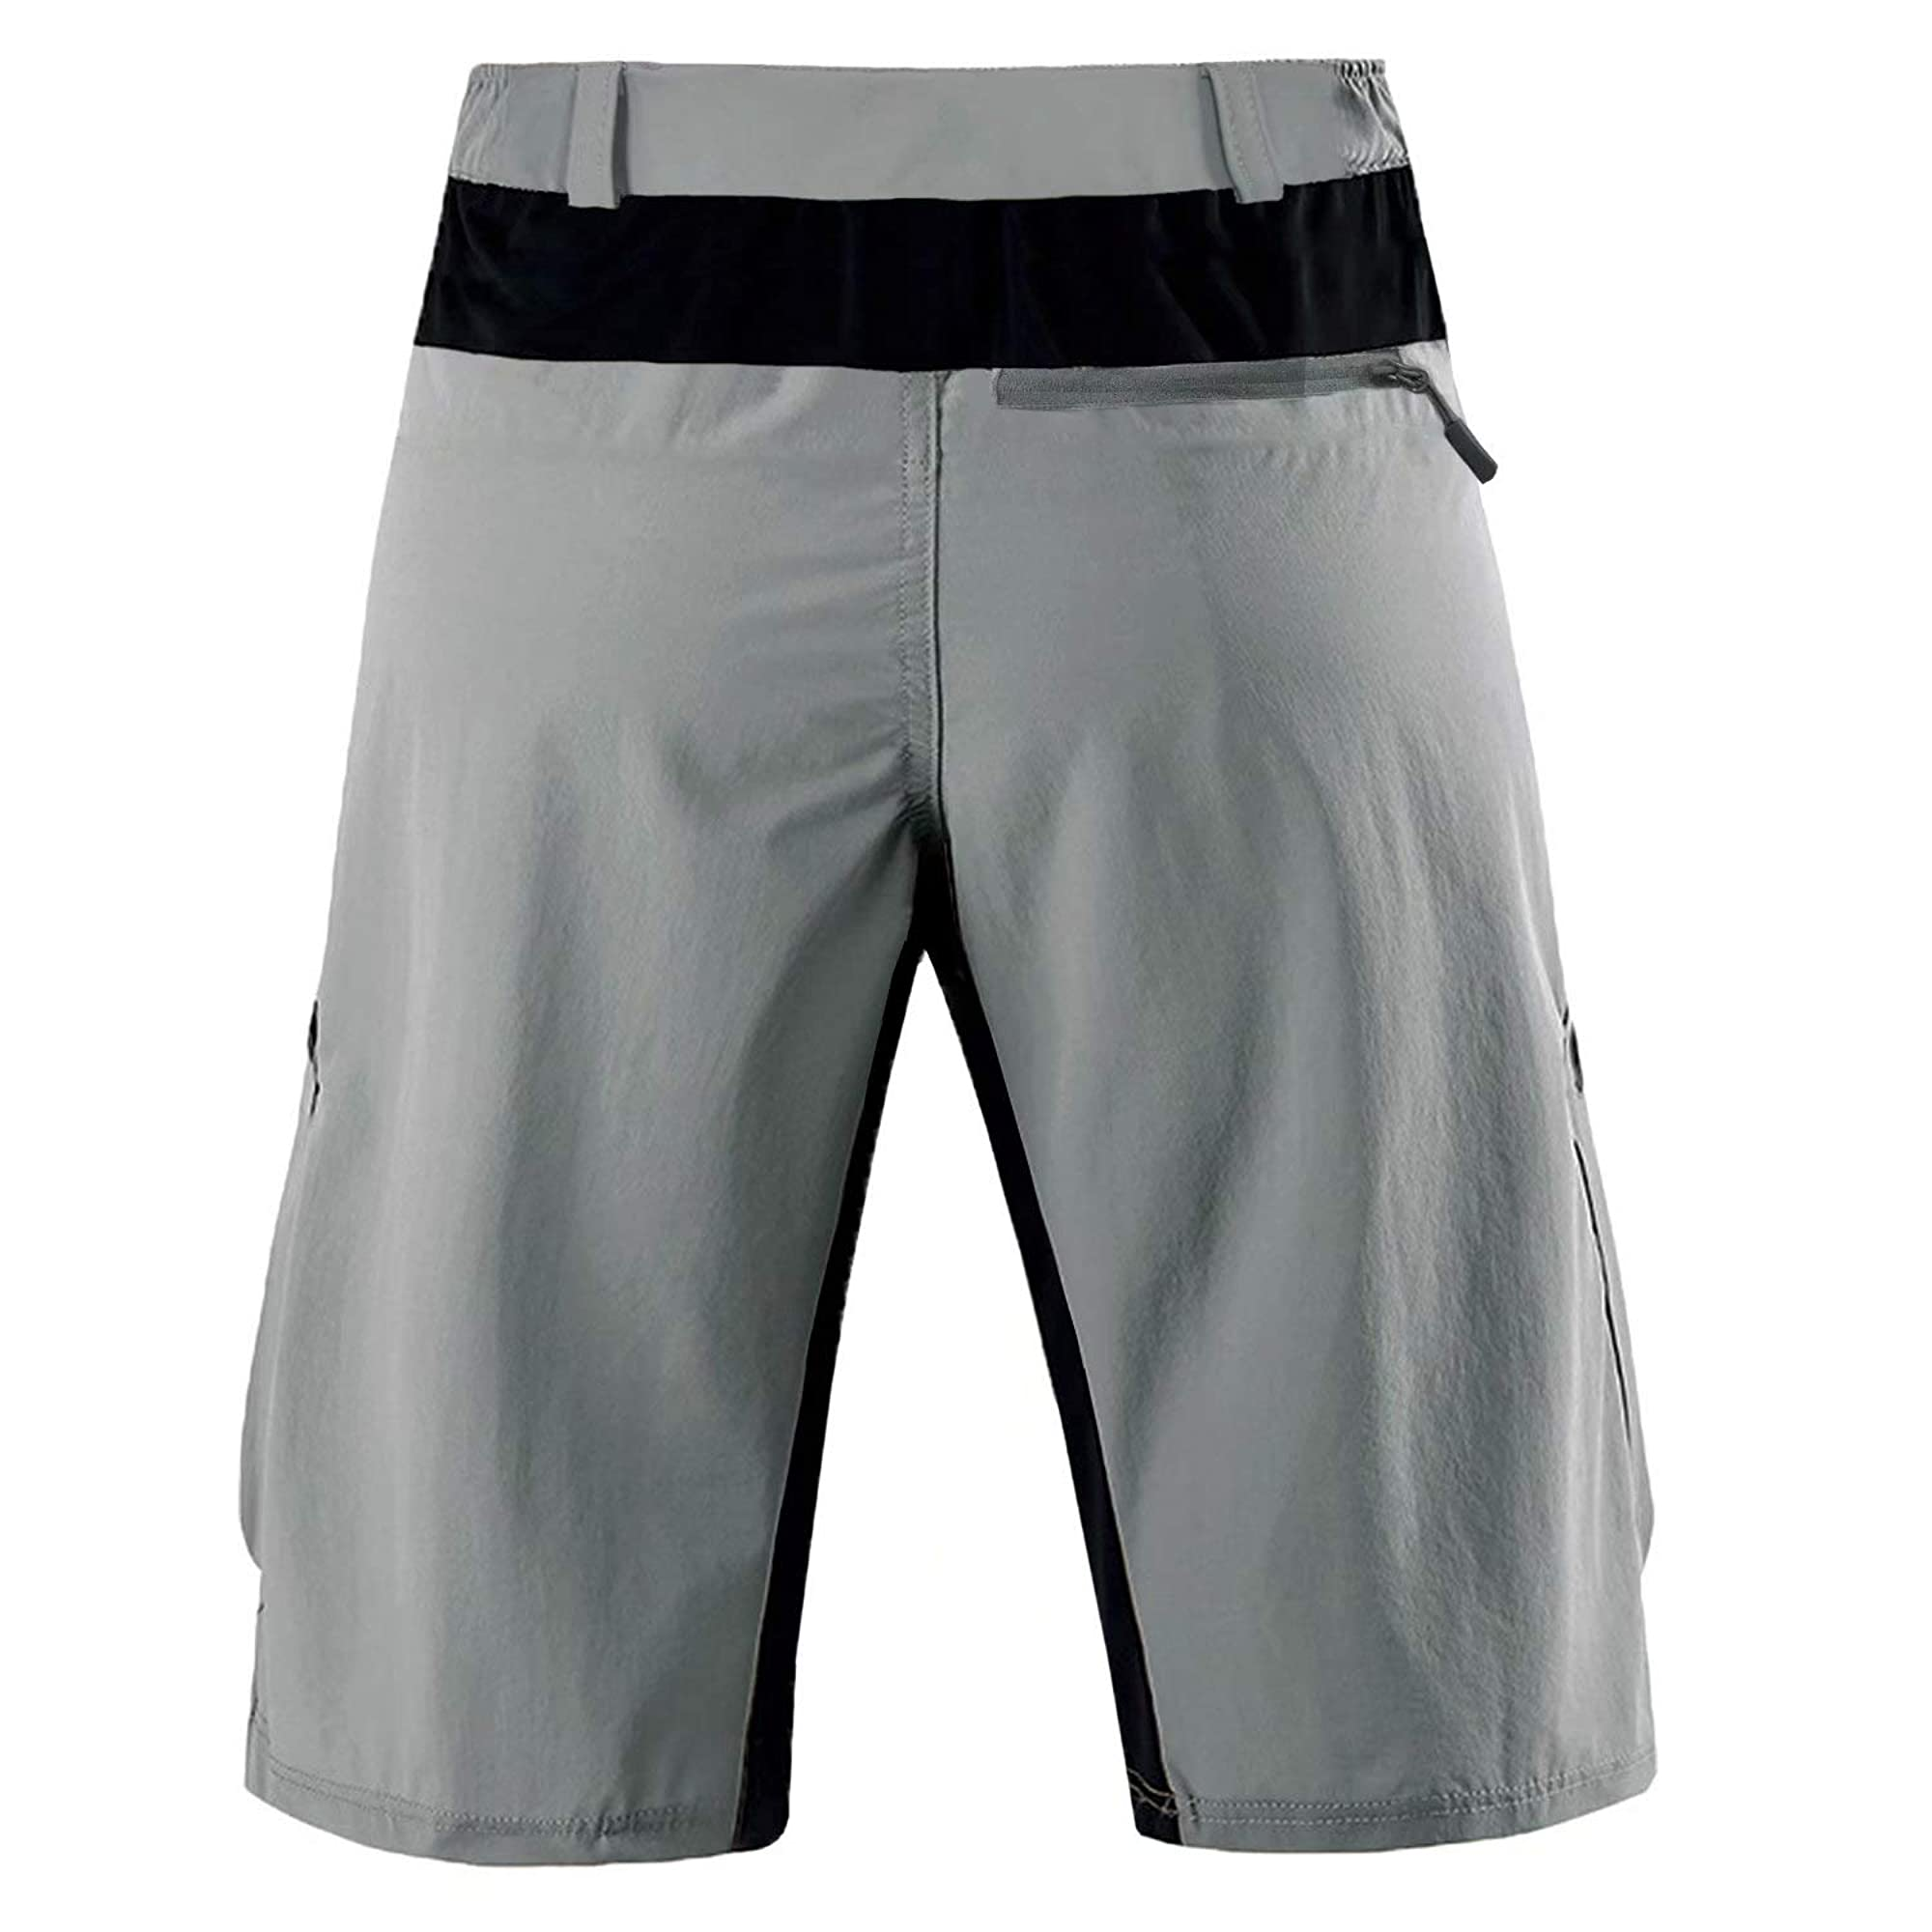 Shorts With 5 Pockets For Hiking